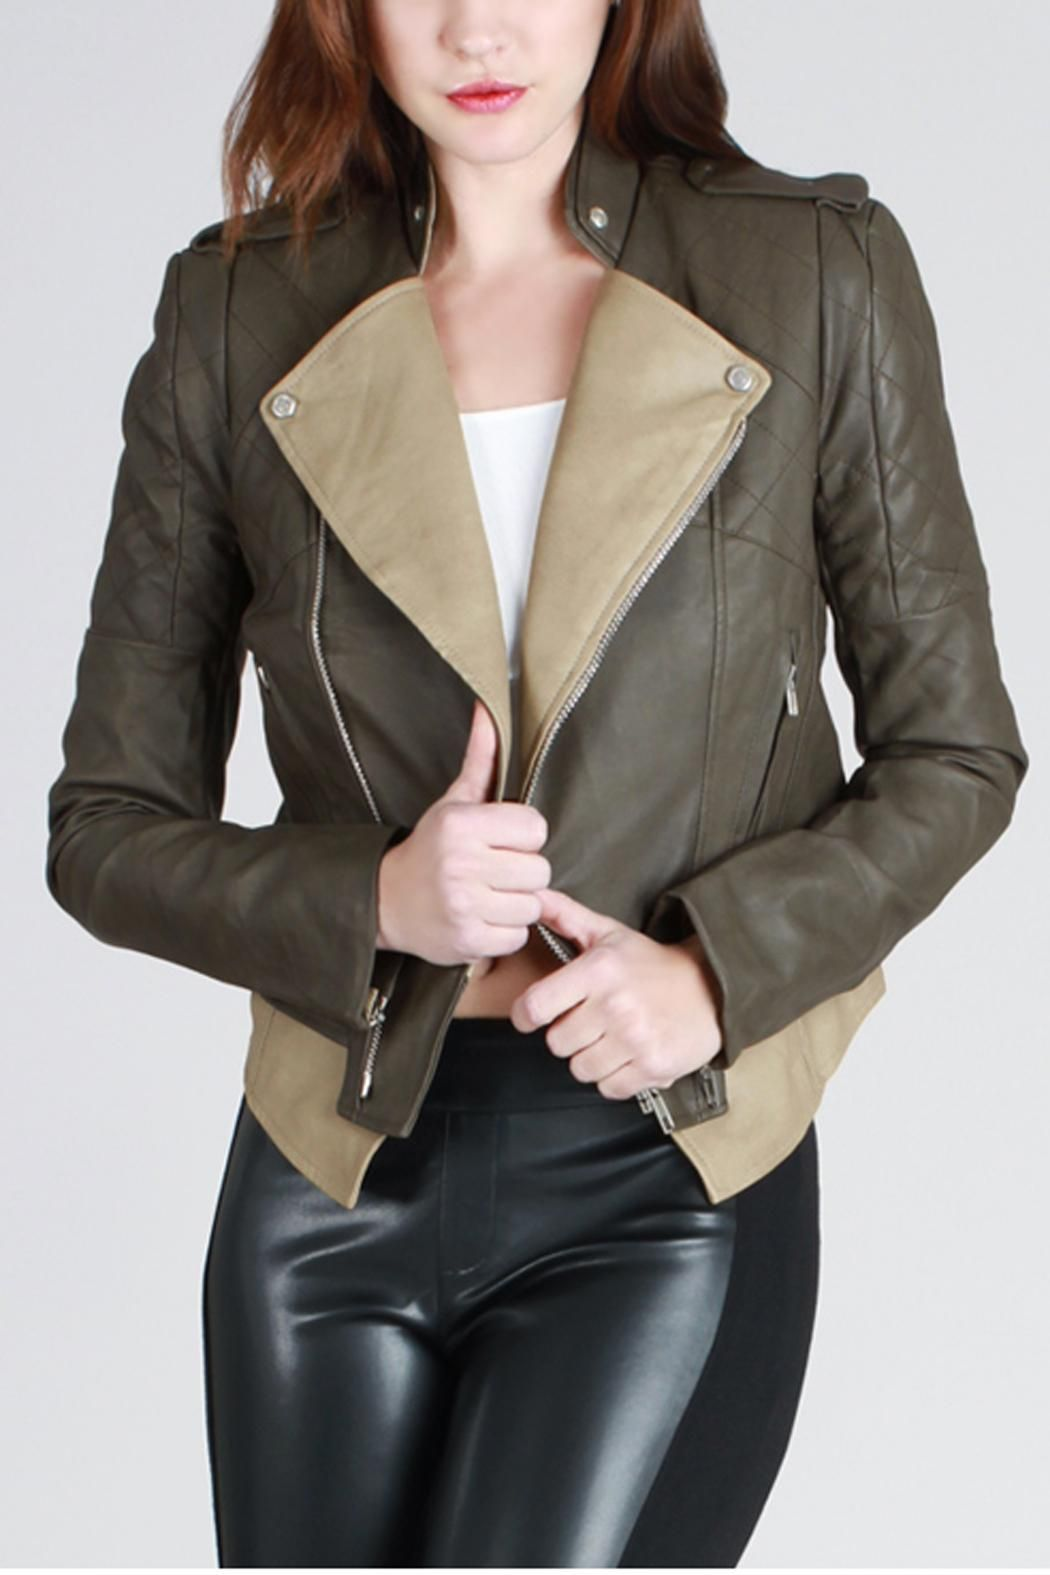 Edgy olive and tan moto jacket with gunmetal zipper and hardware. Pair it with leather pants and sexy heels for an edgy chic look. A closet staple and must have! Vegan leather.   Edgy Leather Jacket by SNAZZY CHIC BOUTIQUE. Clothing - Jackets, Coats & Blazers - Jackets - Leather Louisiana